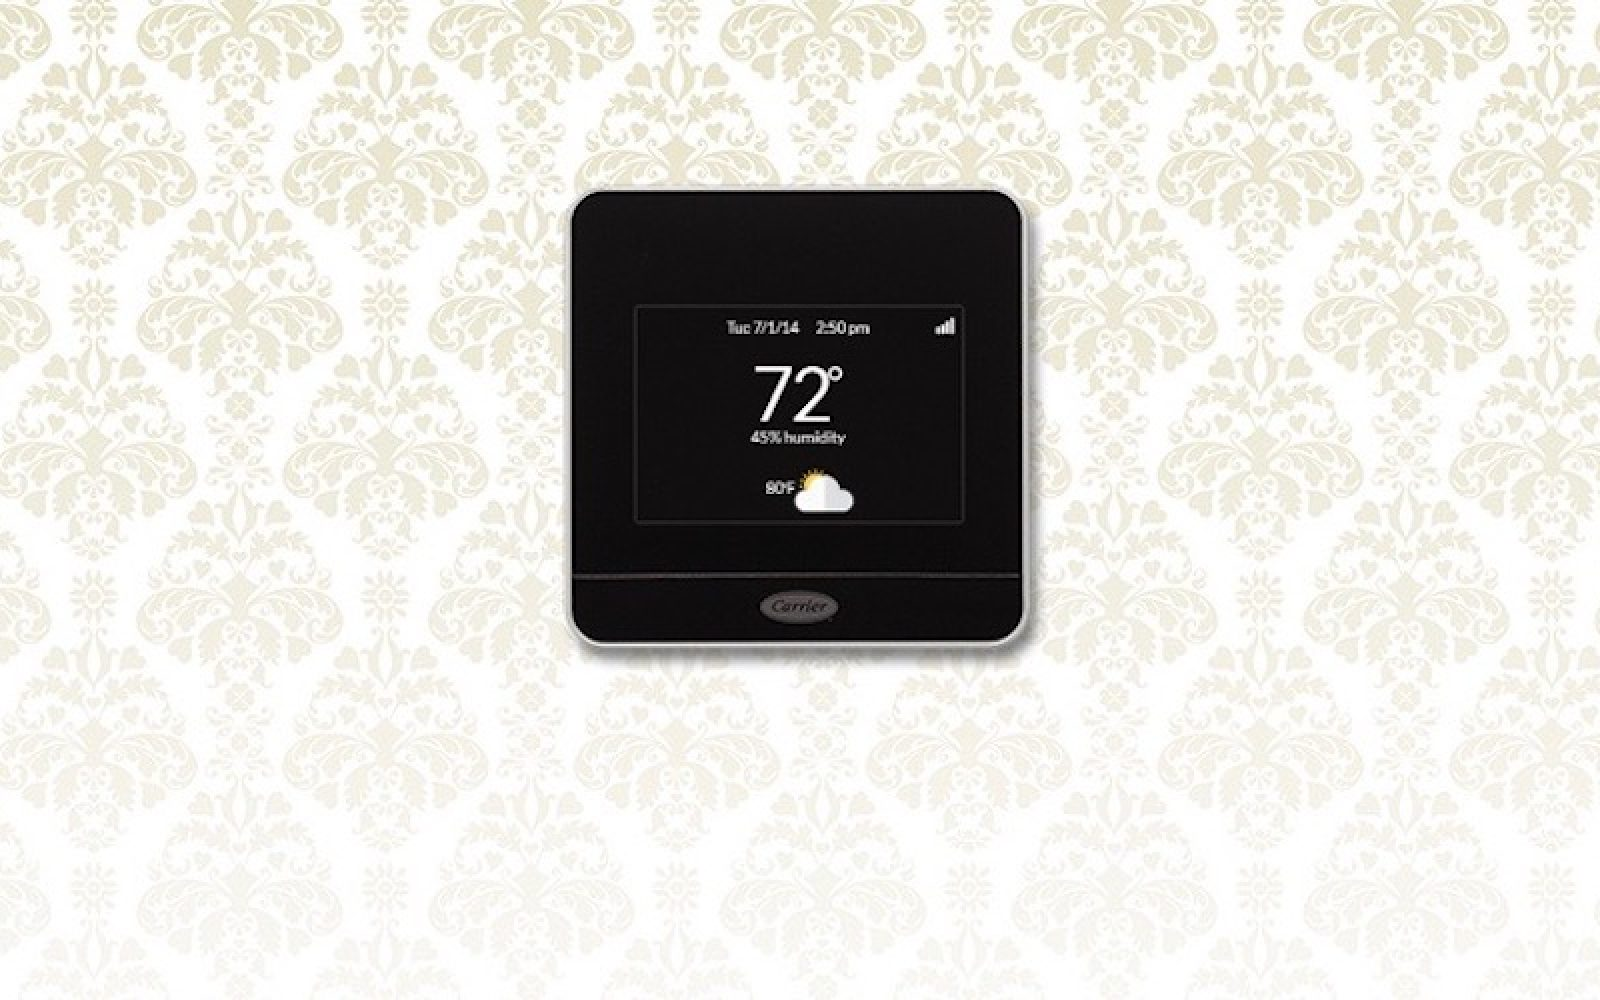 Carrier introducing its first HomeKit thermostat with Wi-Fi Côr models